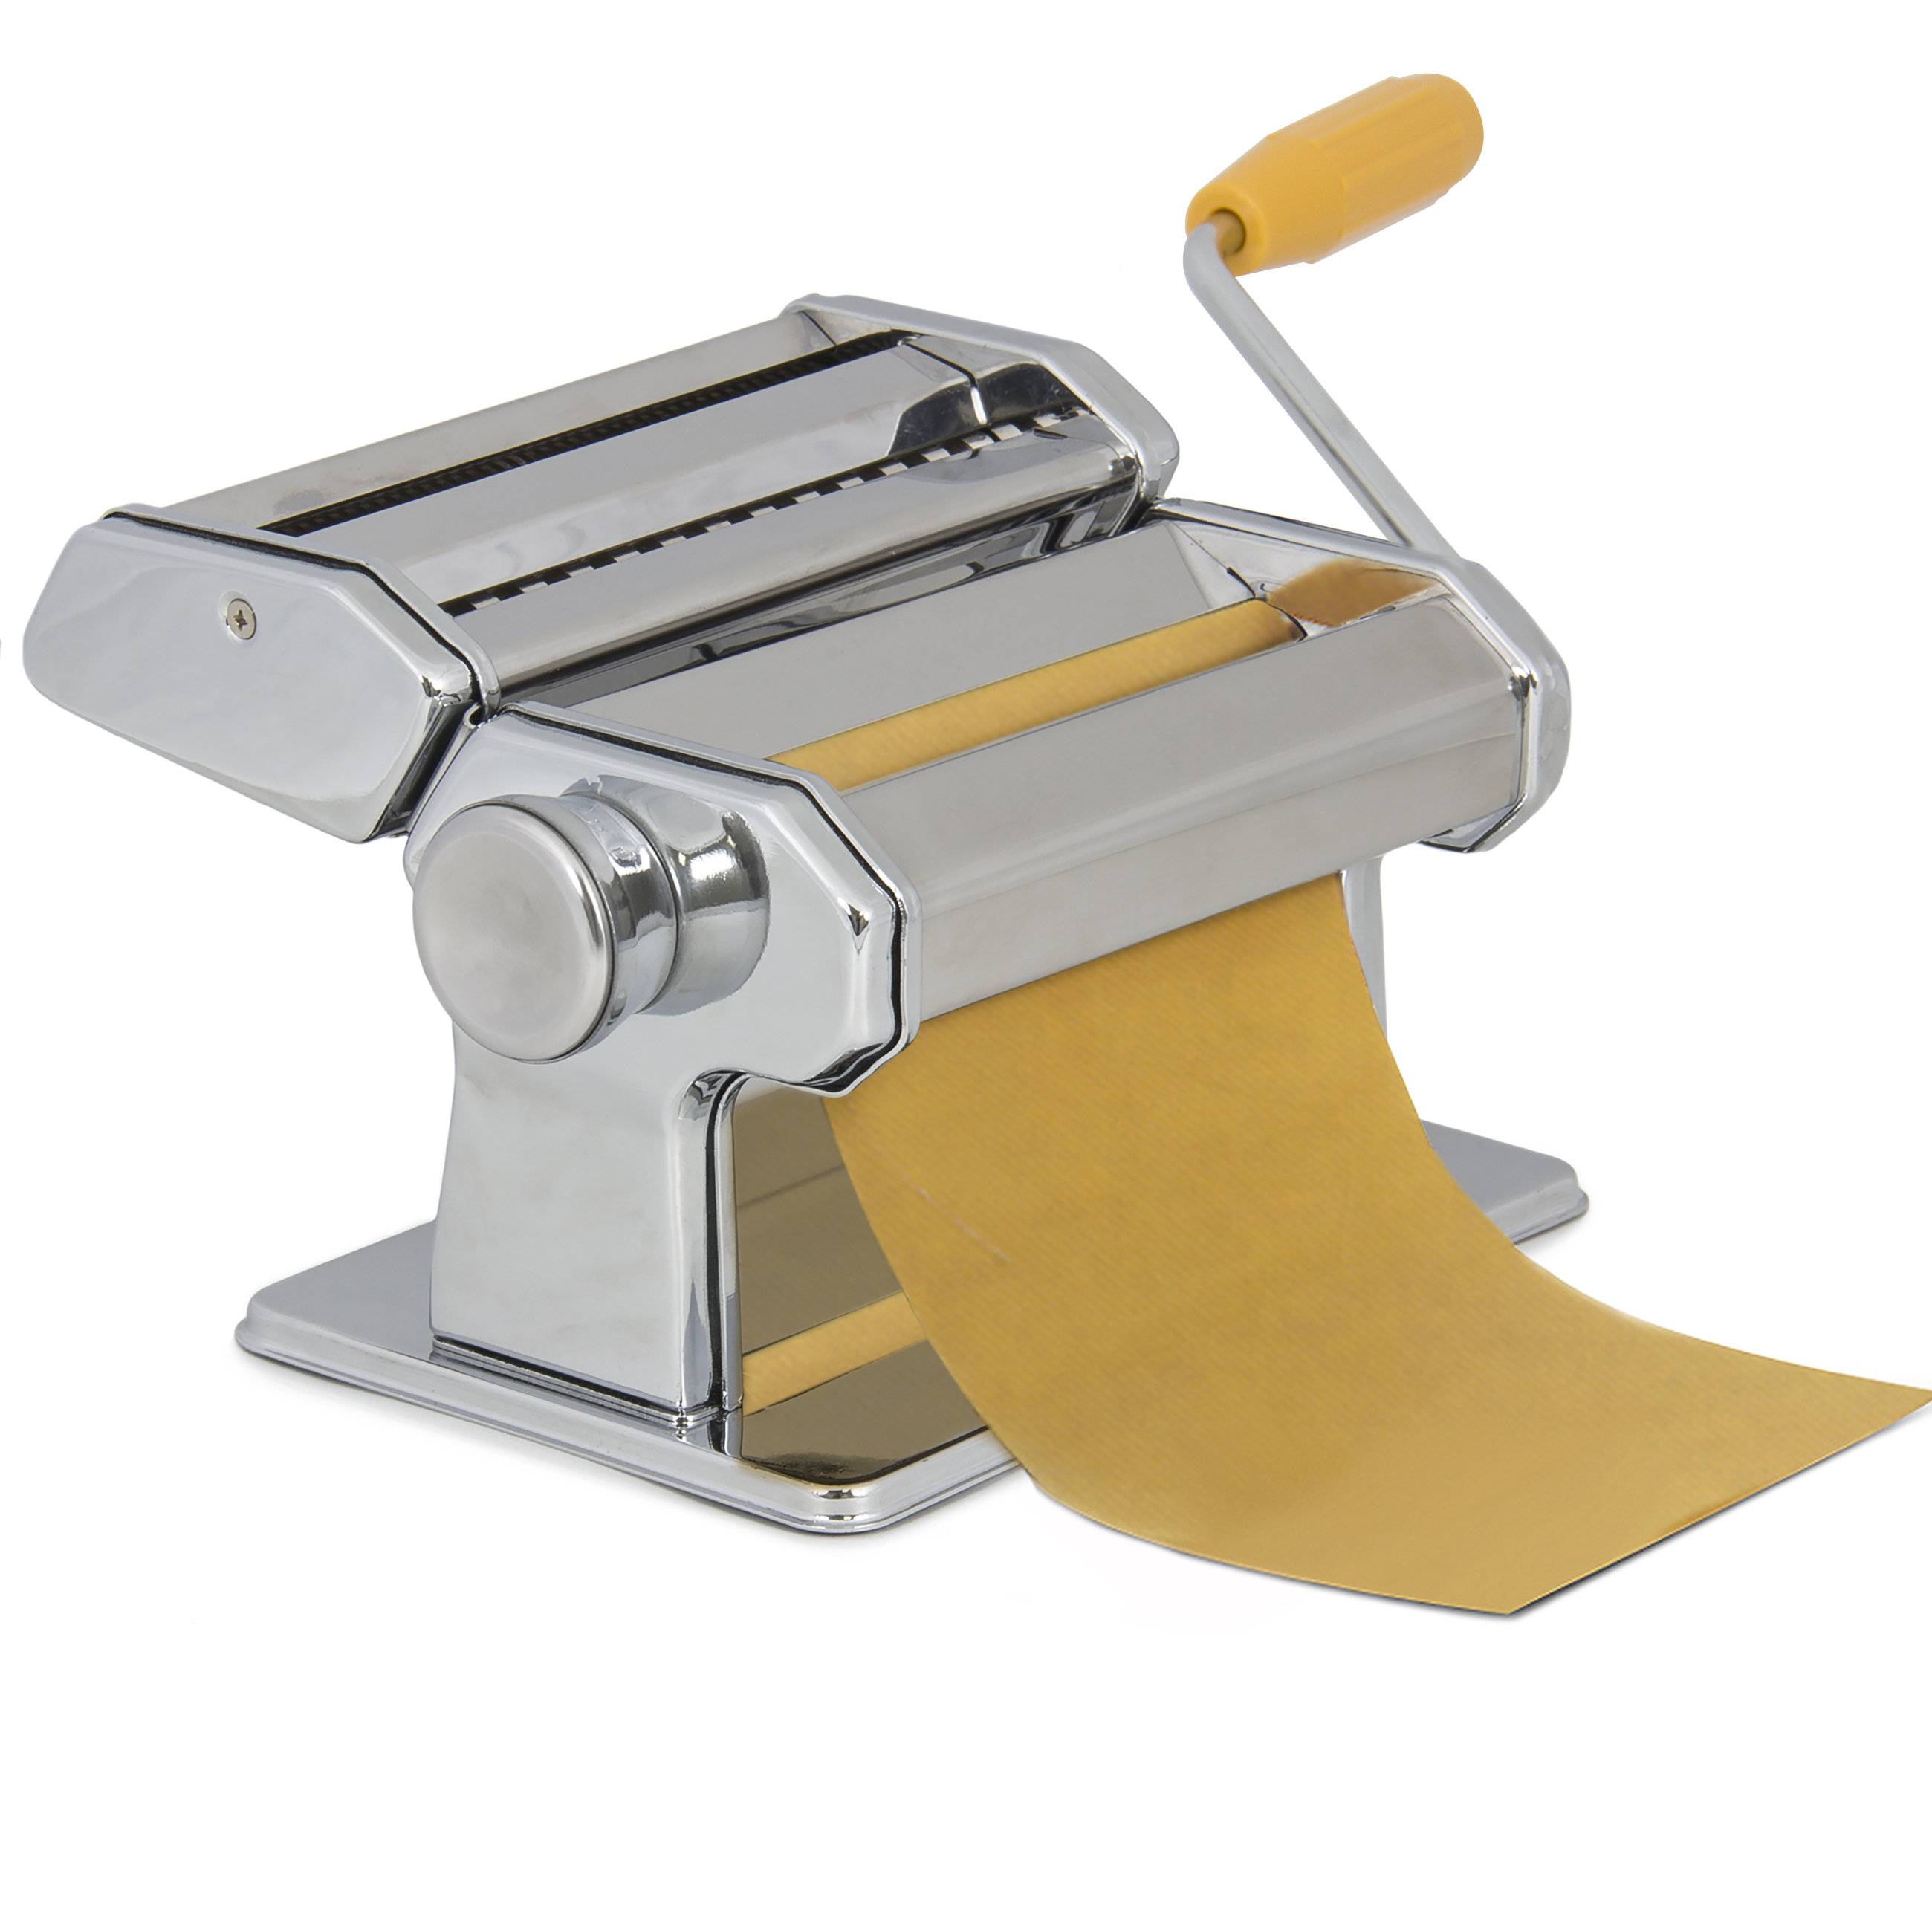 "Best Choice Products Pasta Maker Roller Machine 7"" Dough Making Fresh Noodle Maker Stainless Steel"